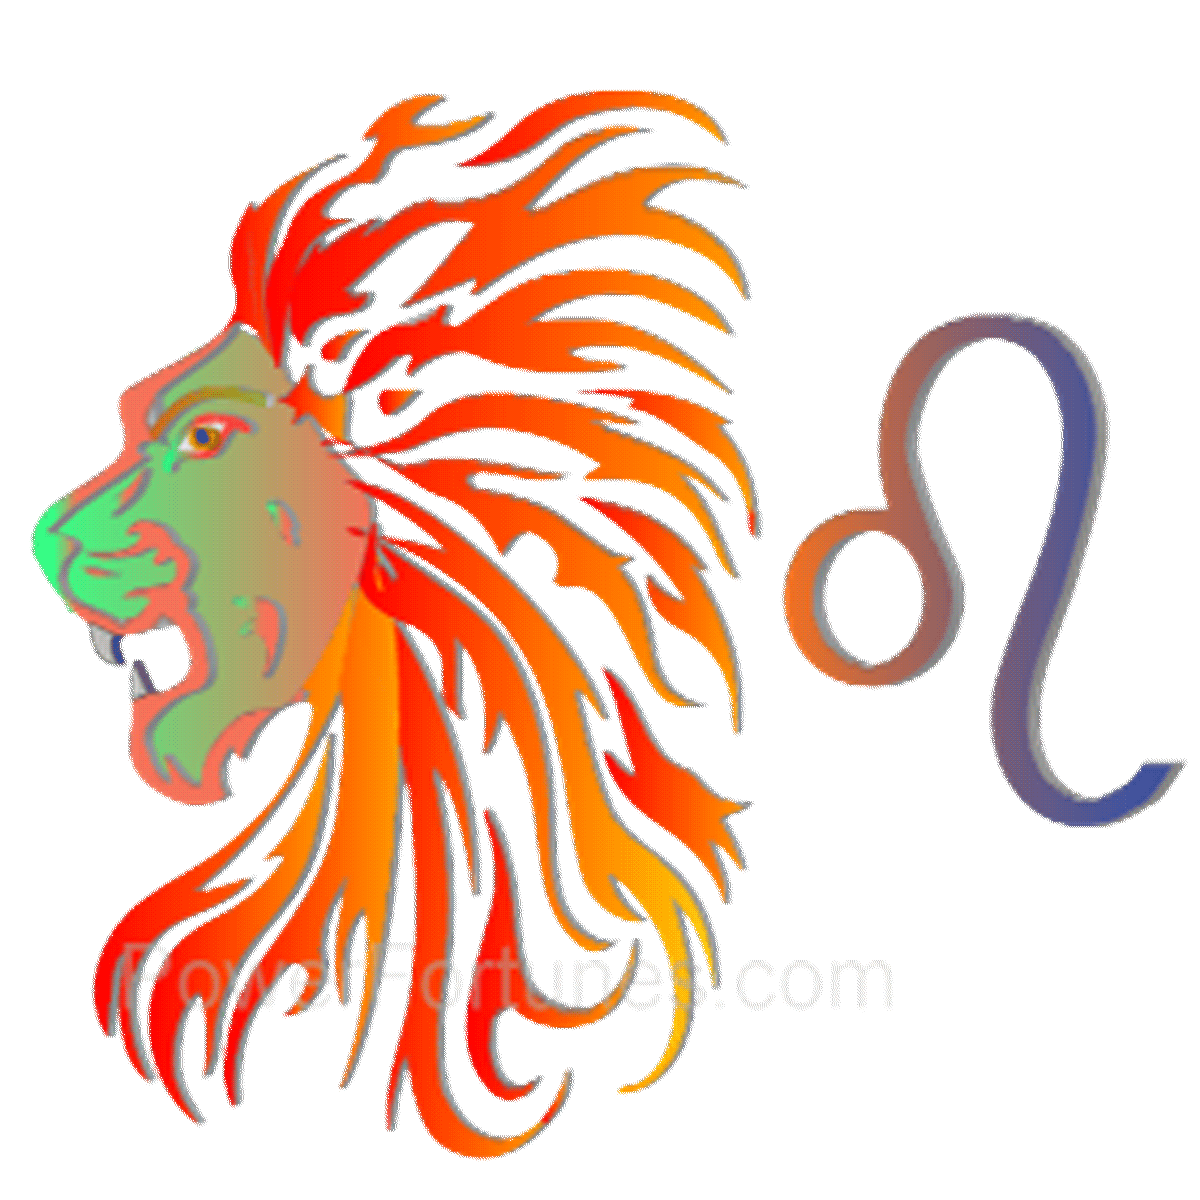 Monthly horoscopes for Leo, from 1st May to 31st May